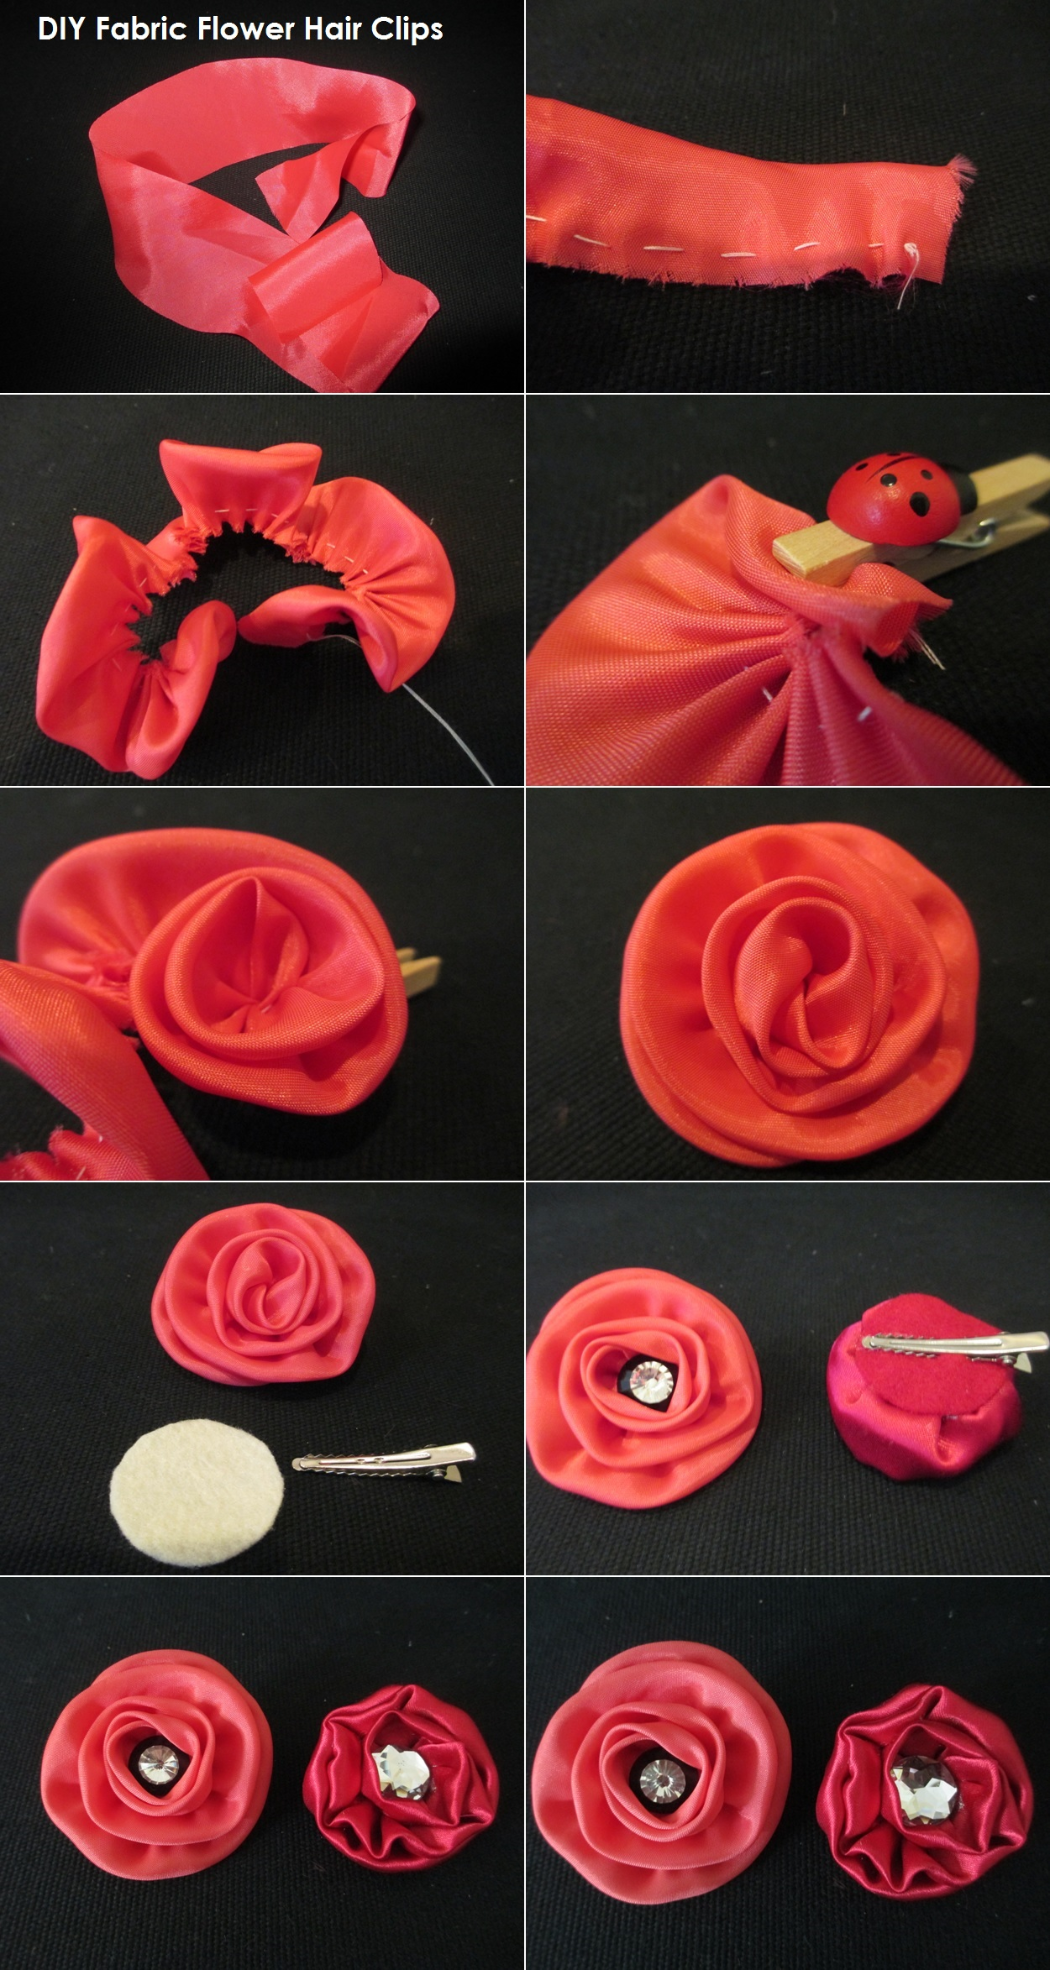 How to Make Fabric Flowers for Hairstyling